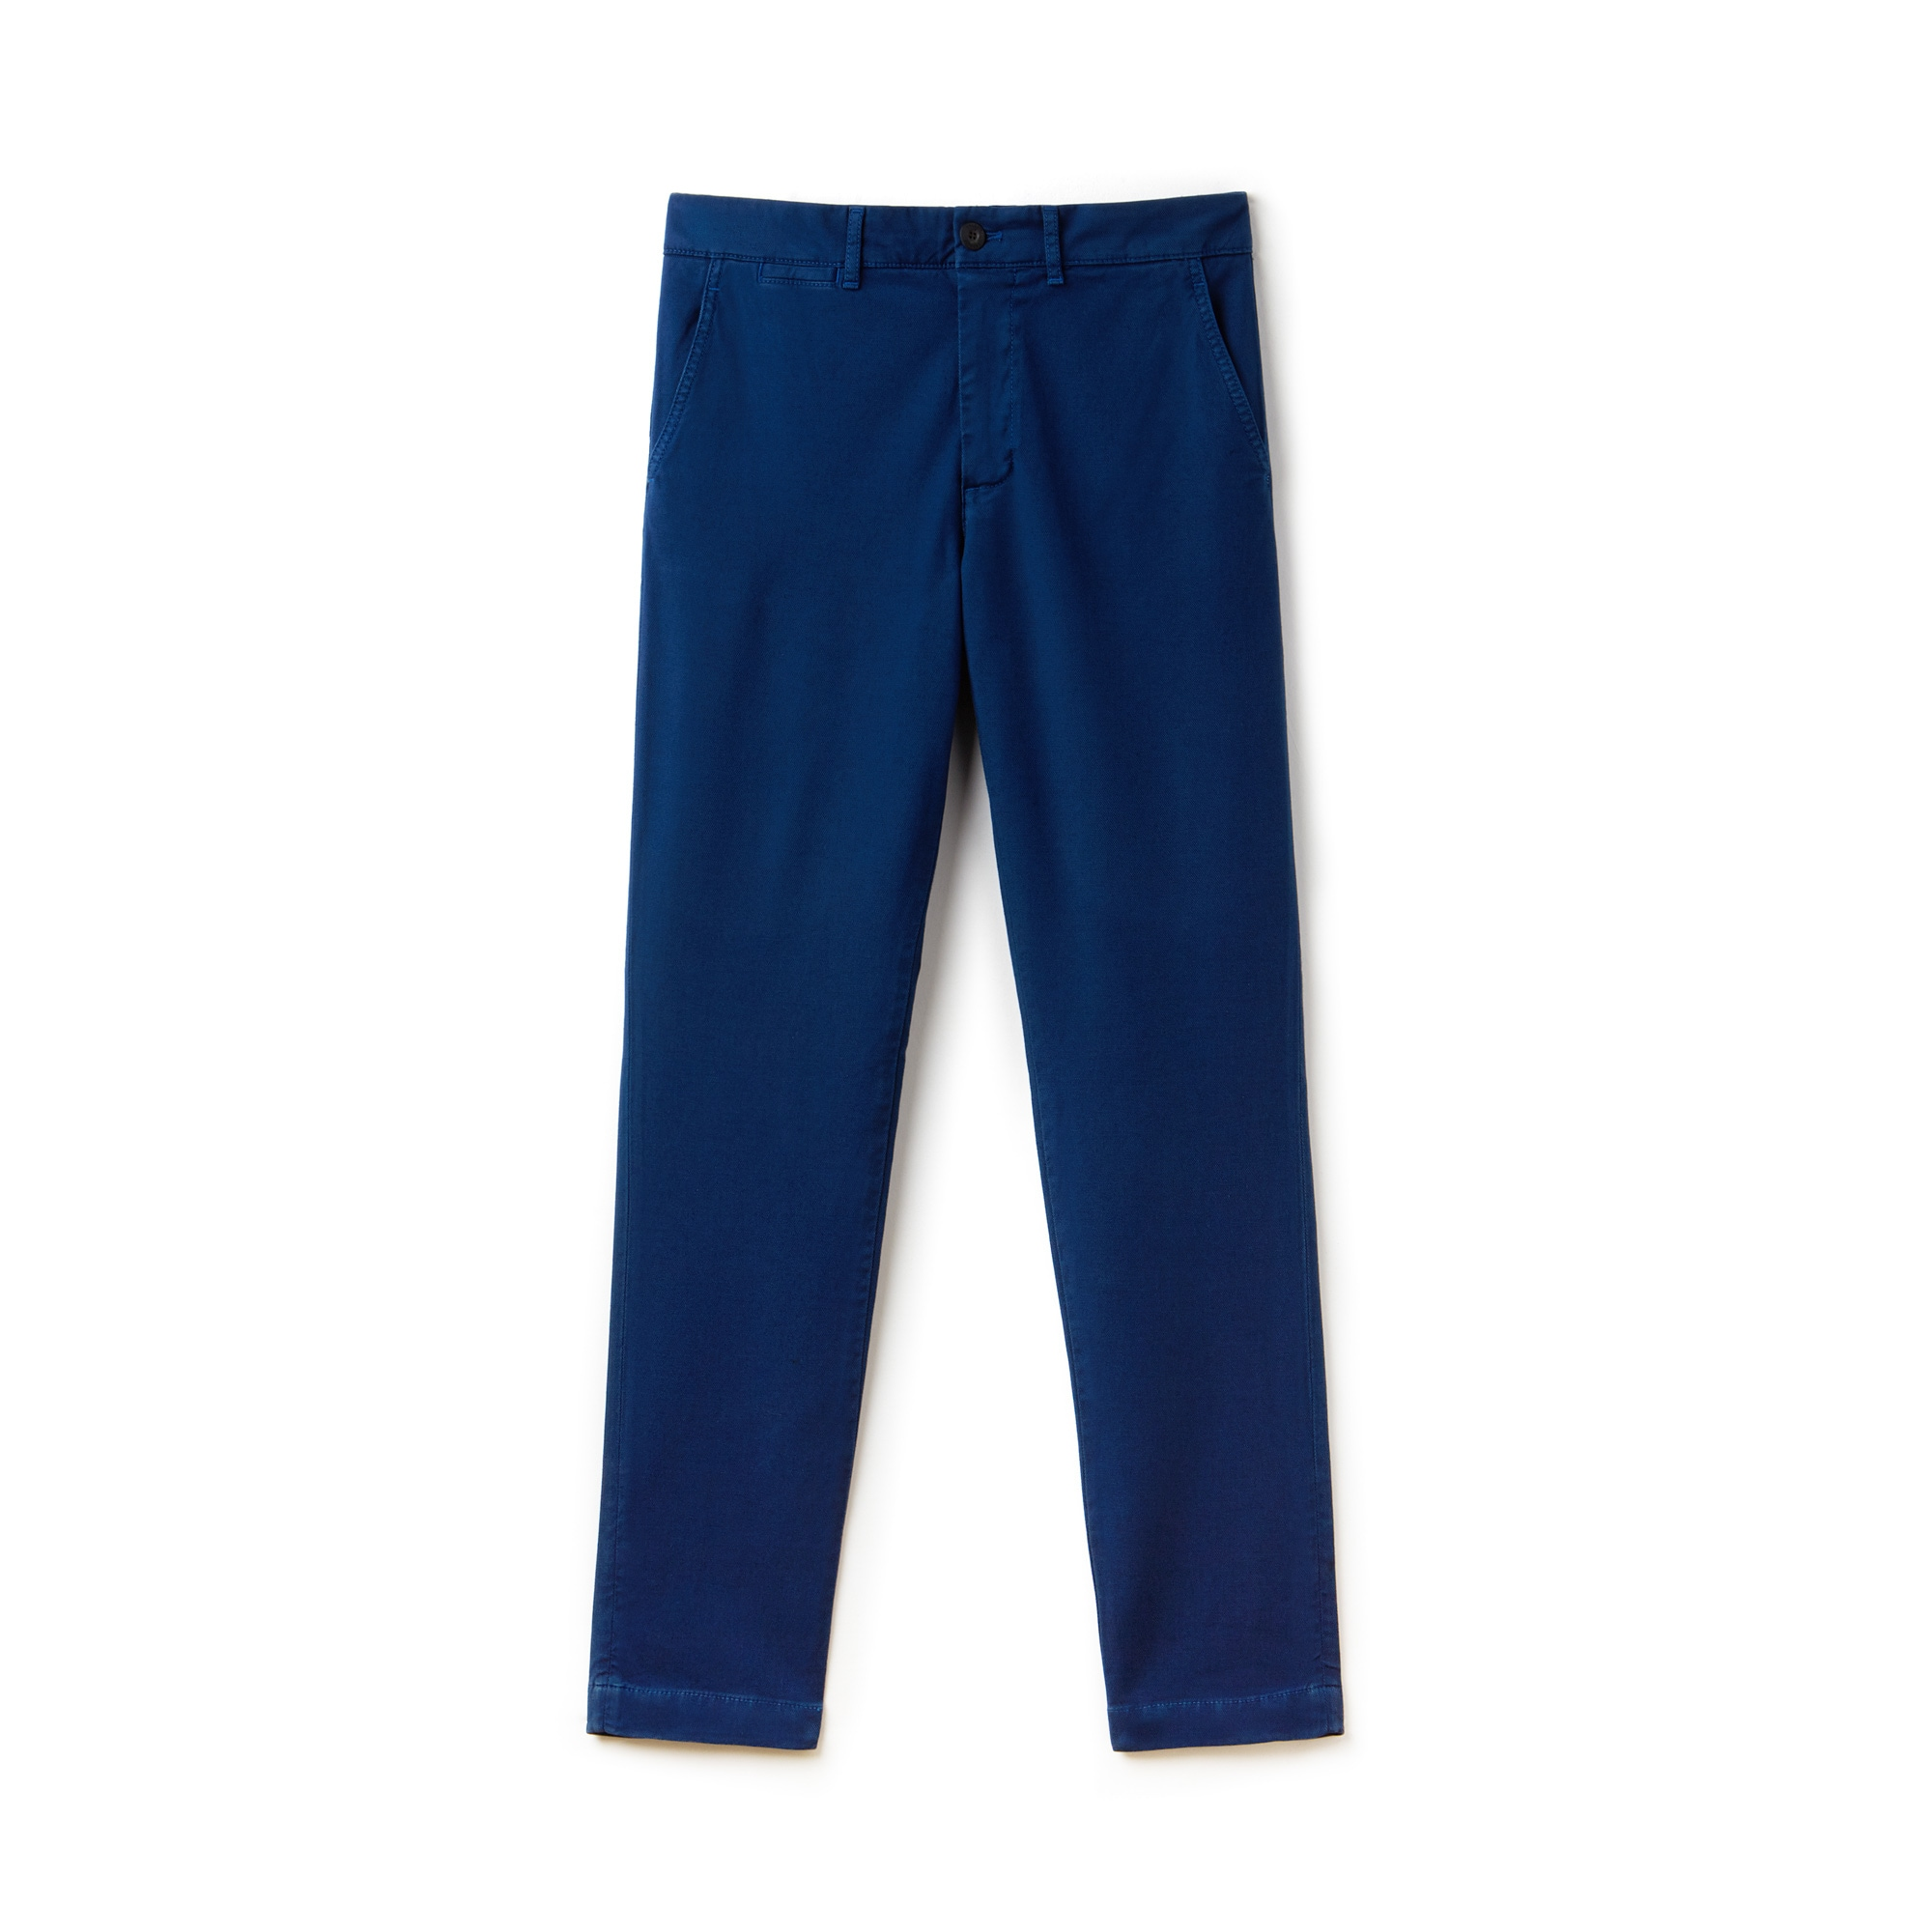 Men's Slim Fit Texturized Stretch Cotton Chino Pants